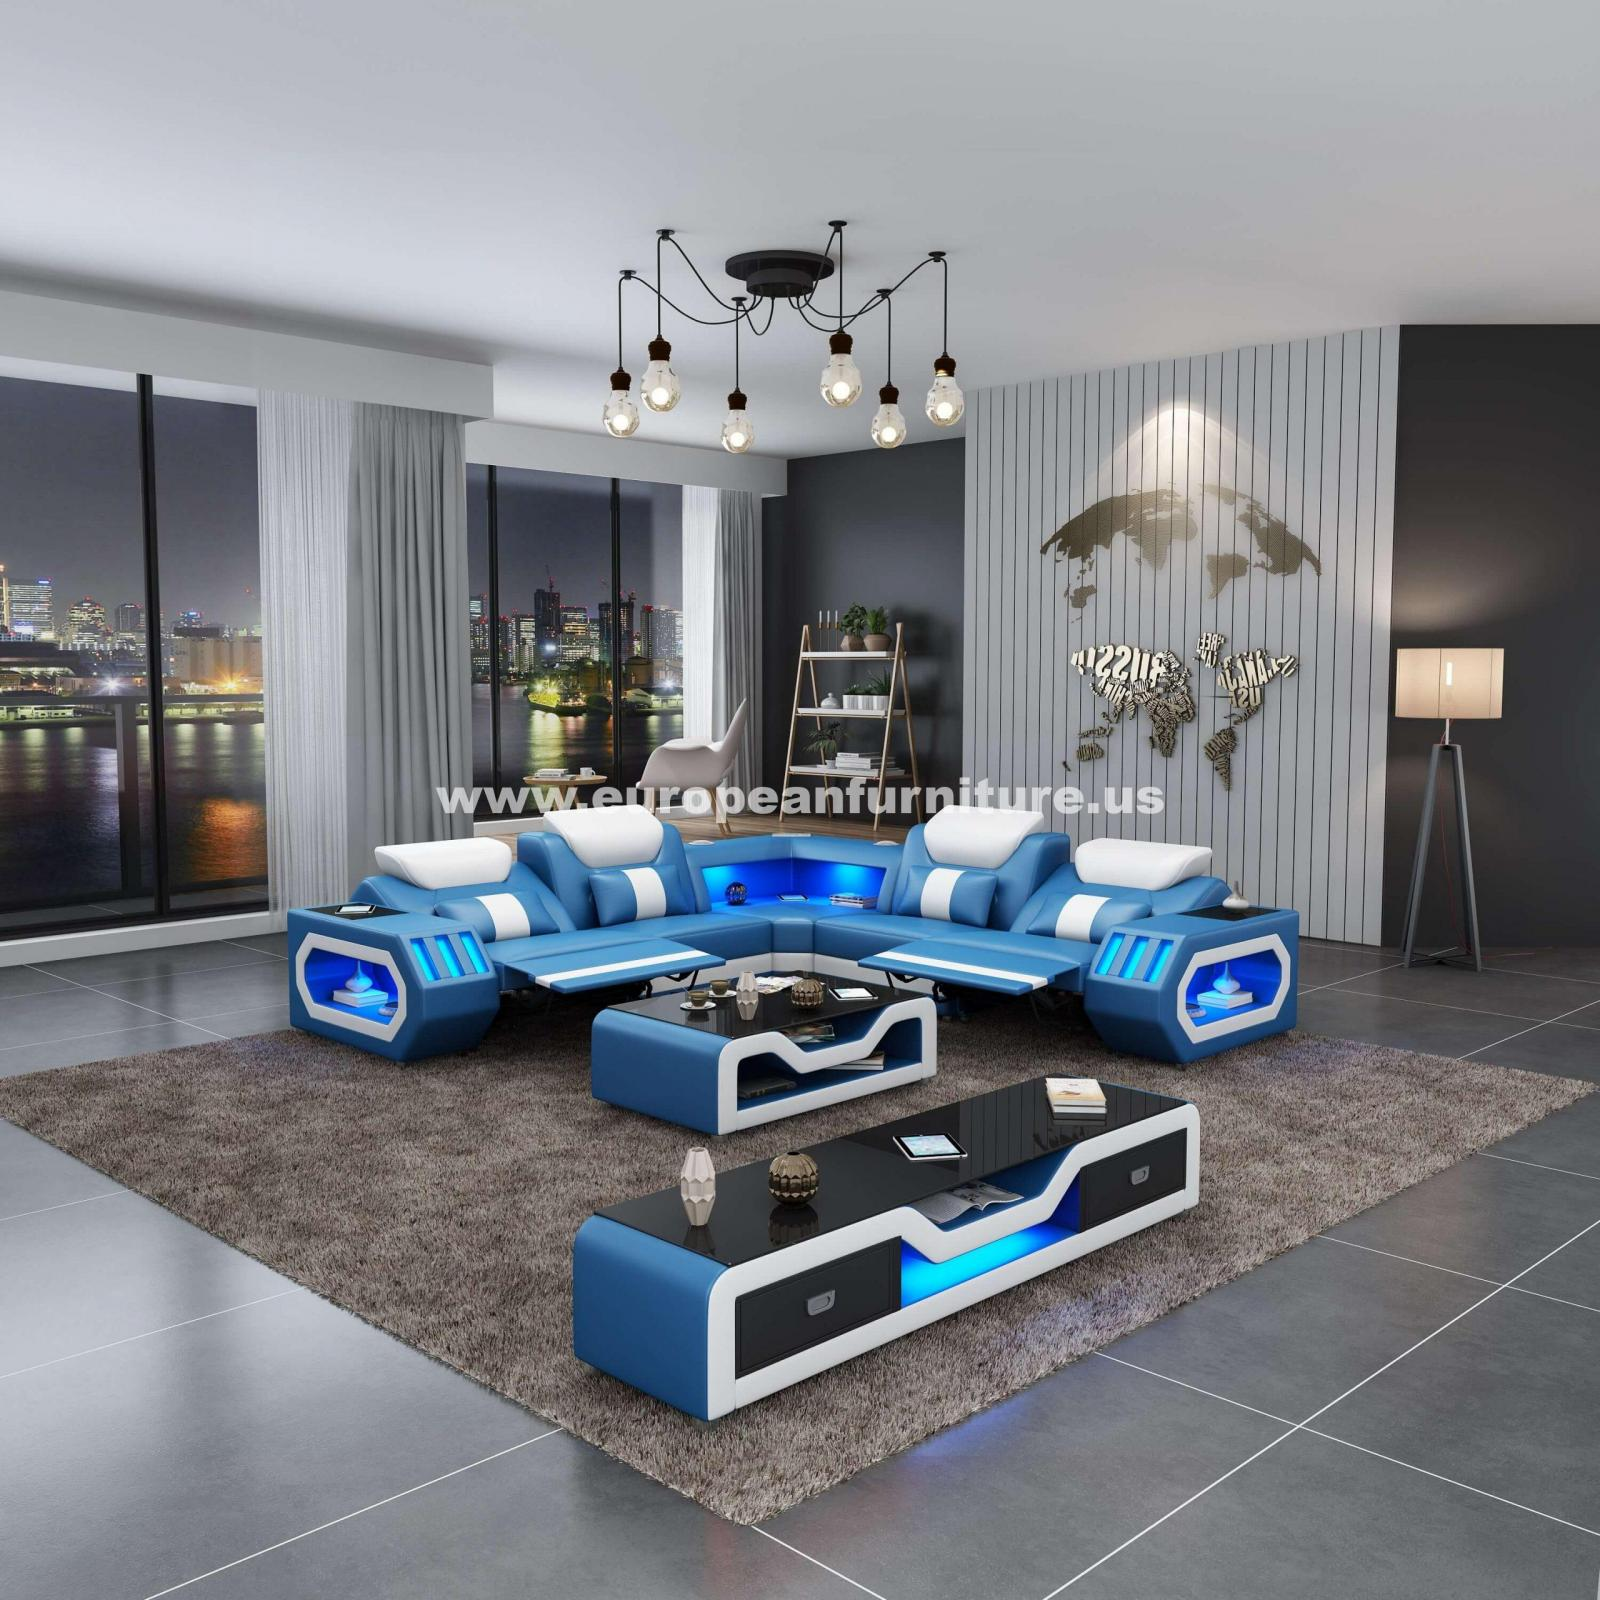 Contemporary, Modern Blue, White Italian Leather and Wood, Genuine leather, Solid Hardwood Reclining Sectional 1 pcs SPACESHIP by European Furniture